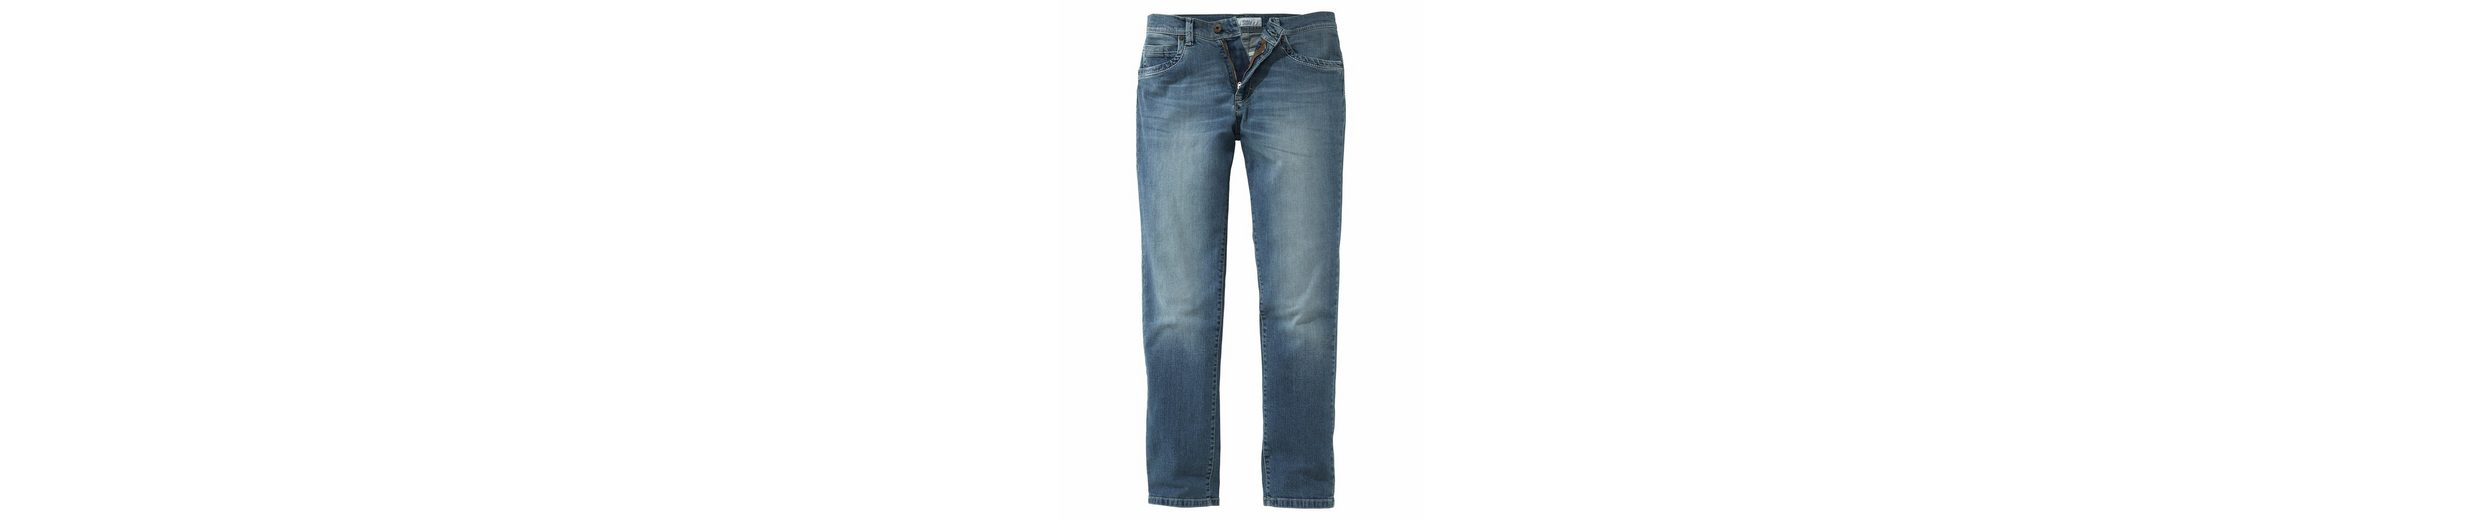 Brax Straight-Jeans, Stretch